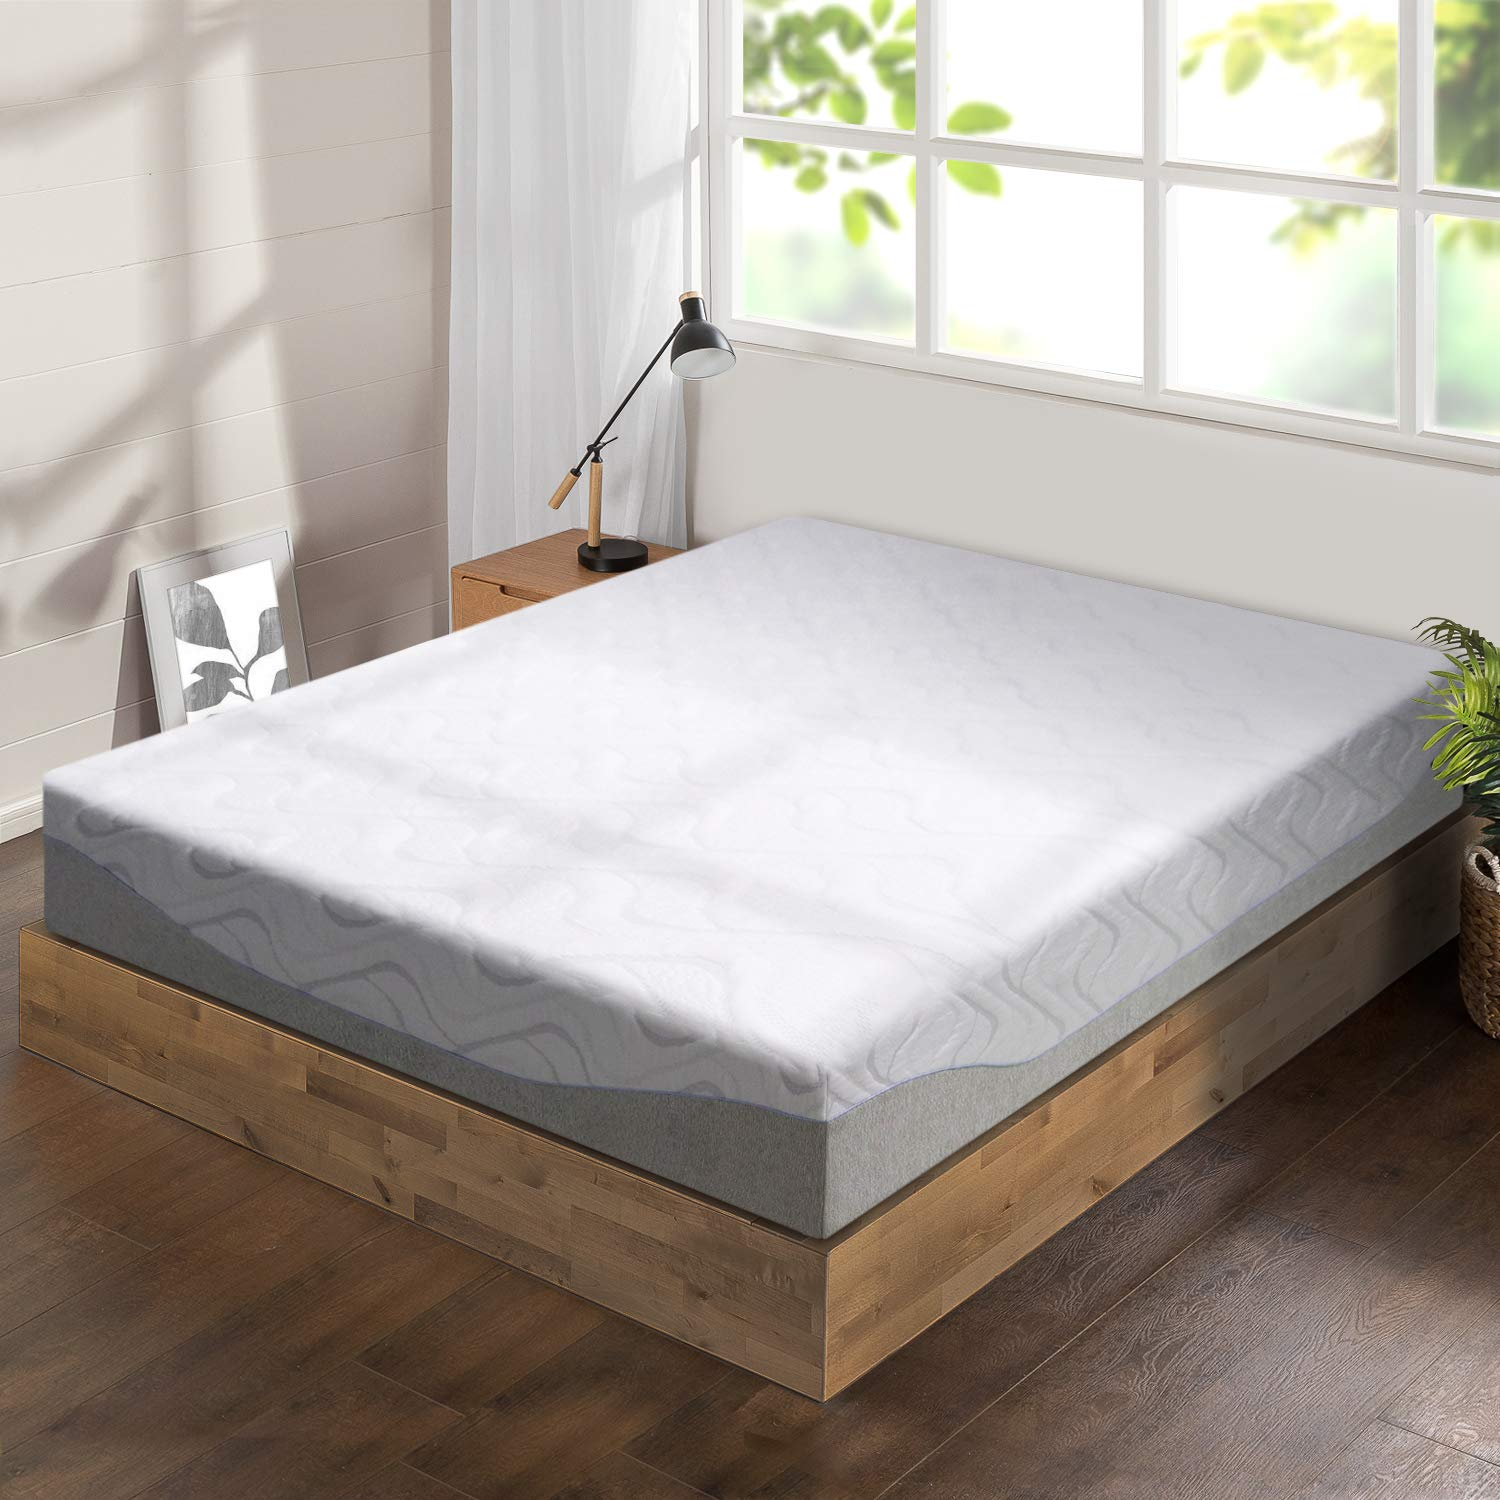 "Best Price Mattress 11"" Gel Infused Memory Foam Mattress, King"